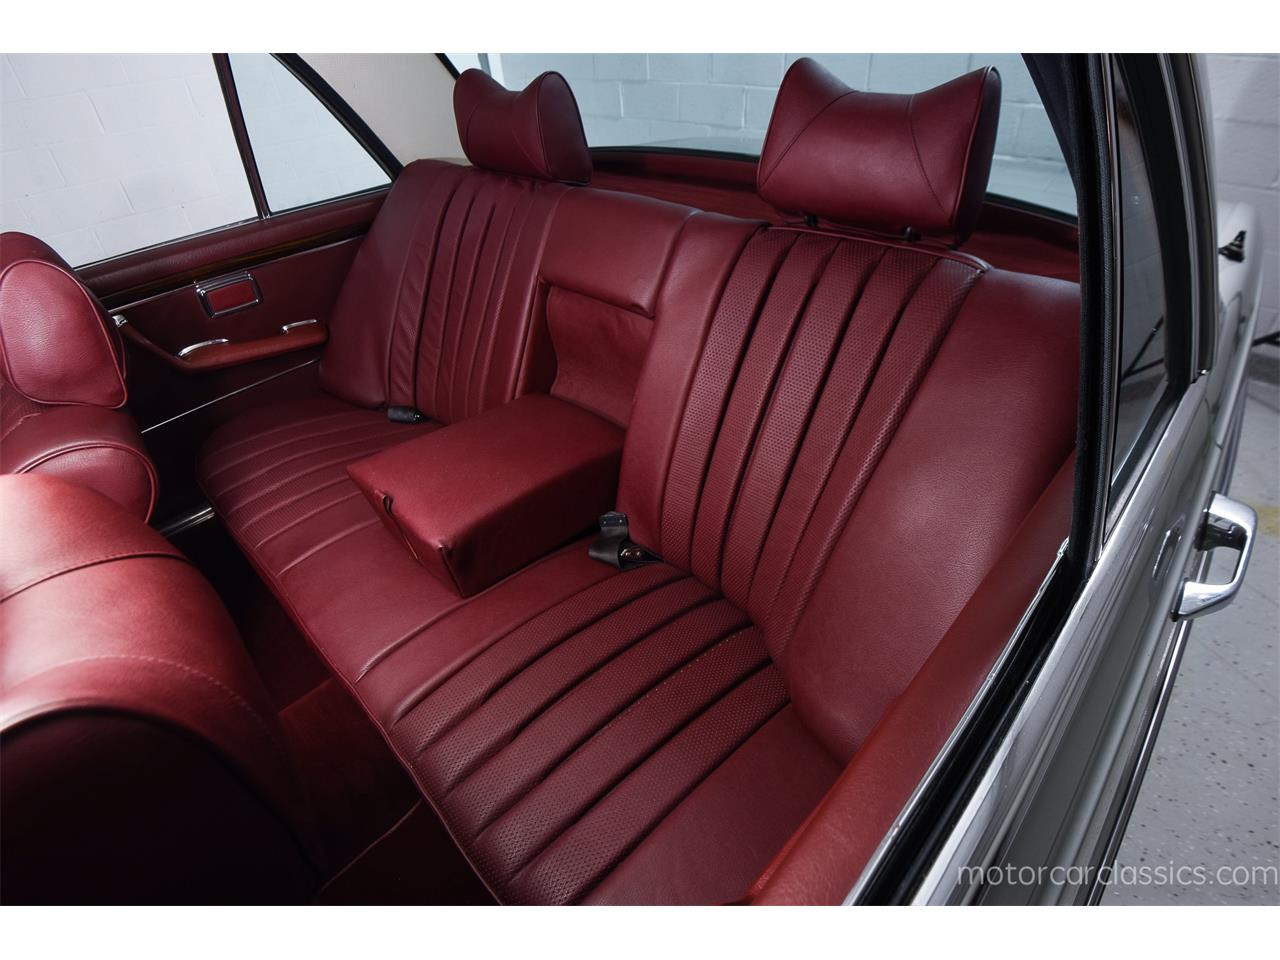 1971 Mercedes-Benz 300SEL for sale in Farmingdale, NY – photo 24